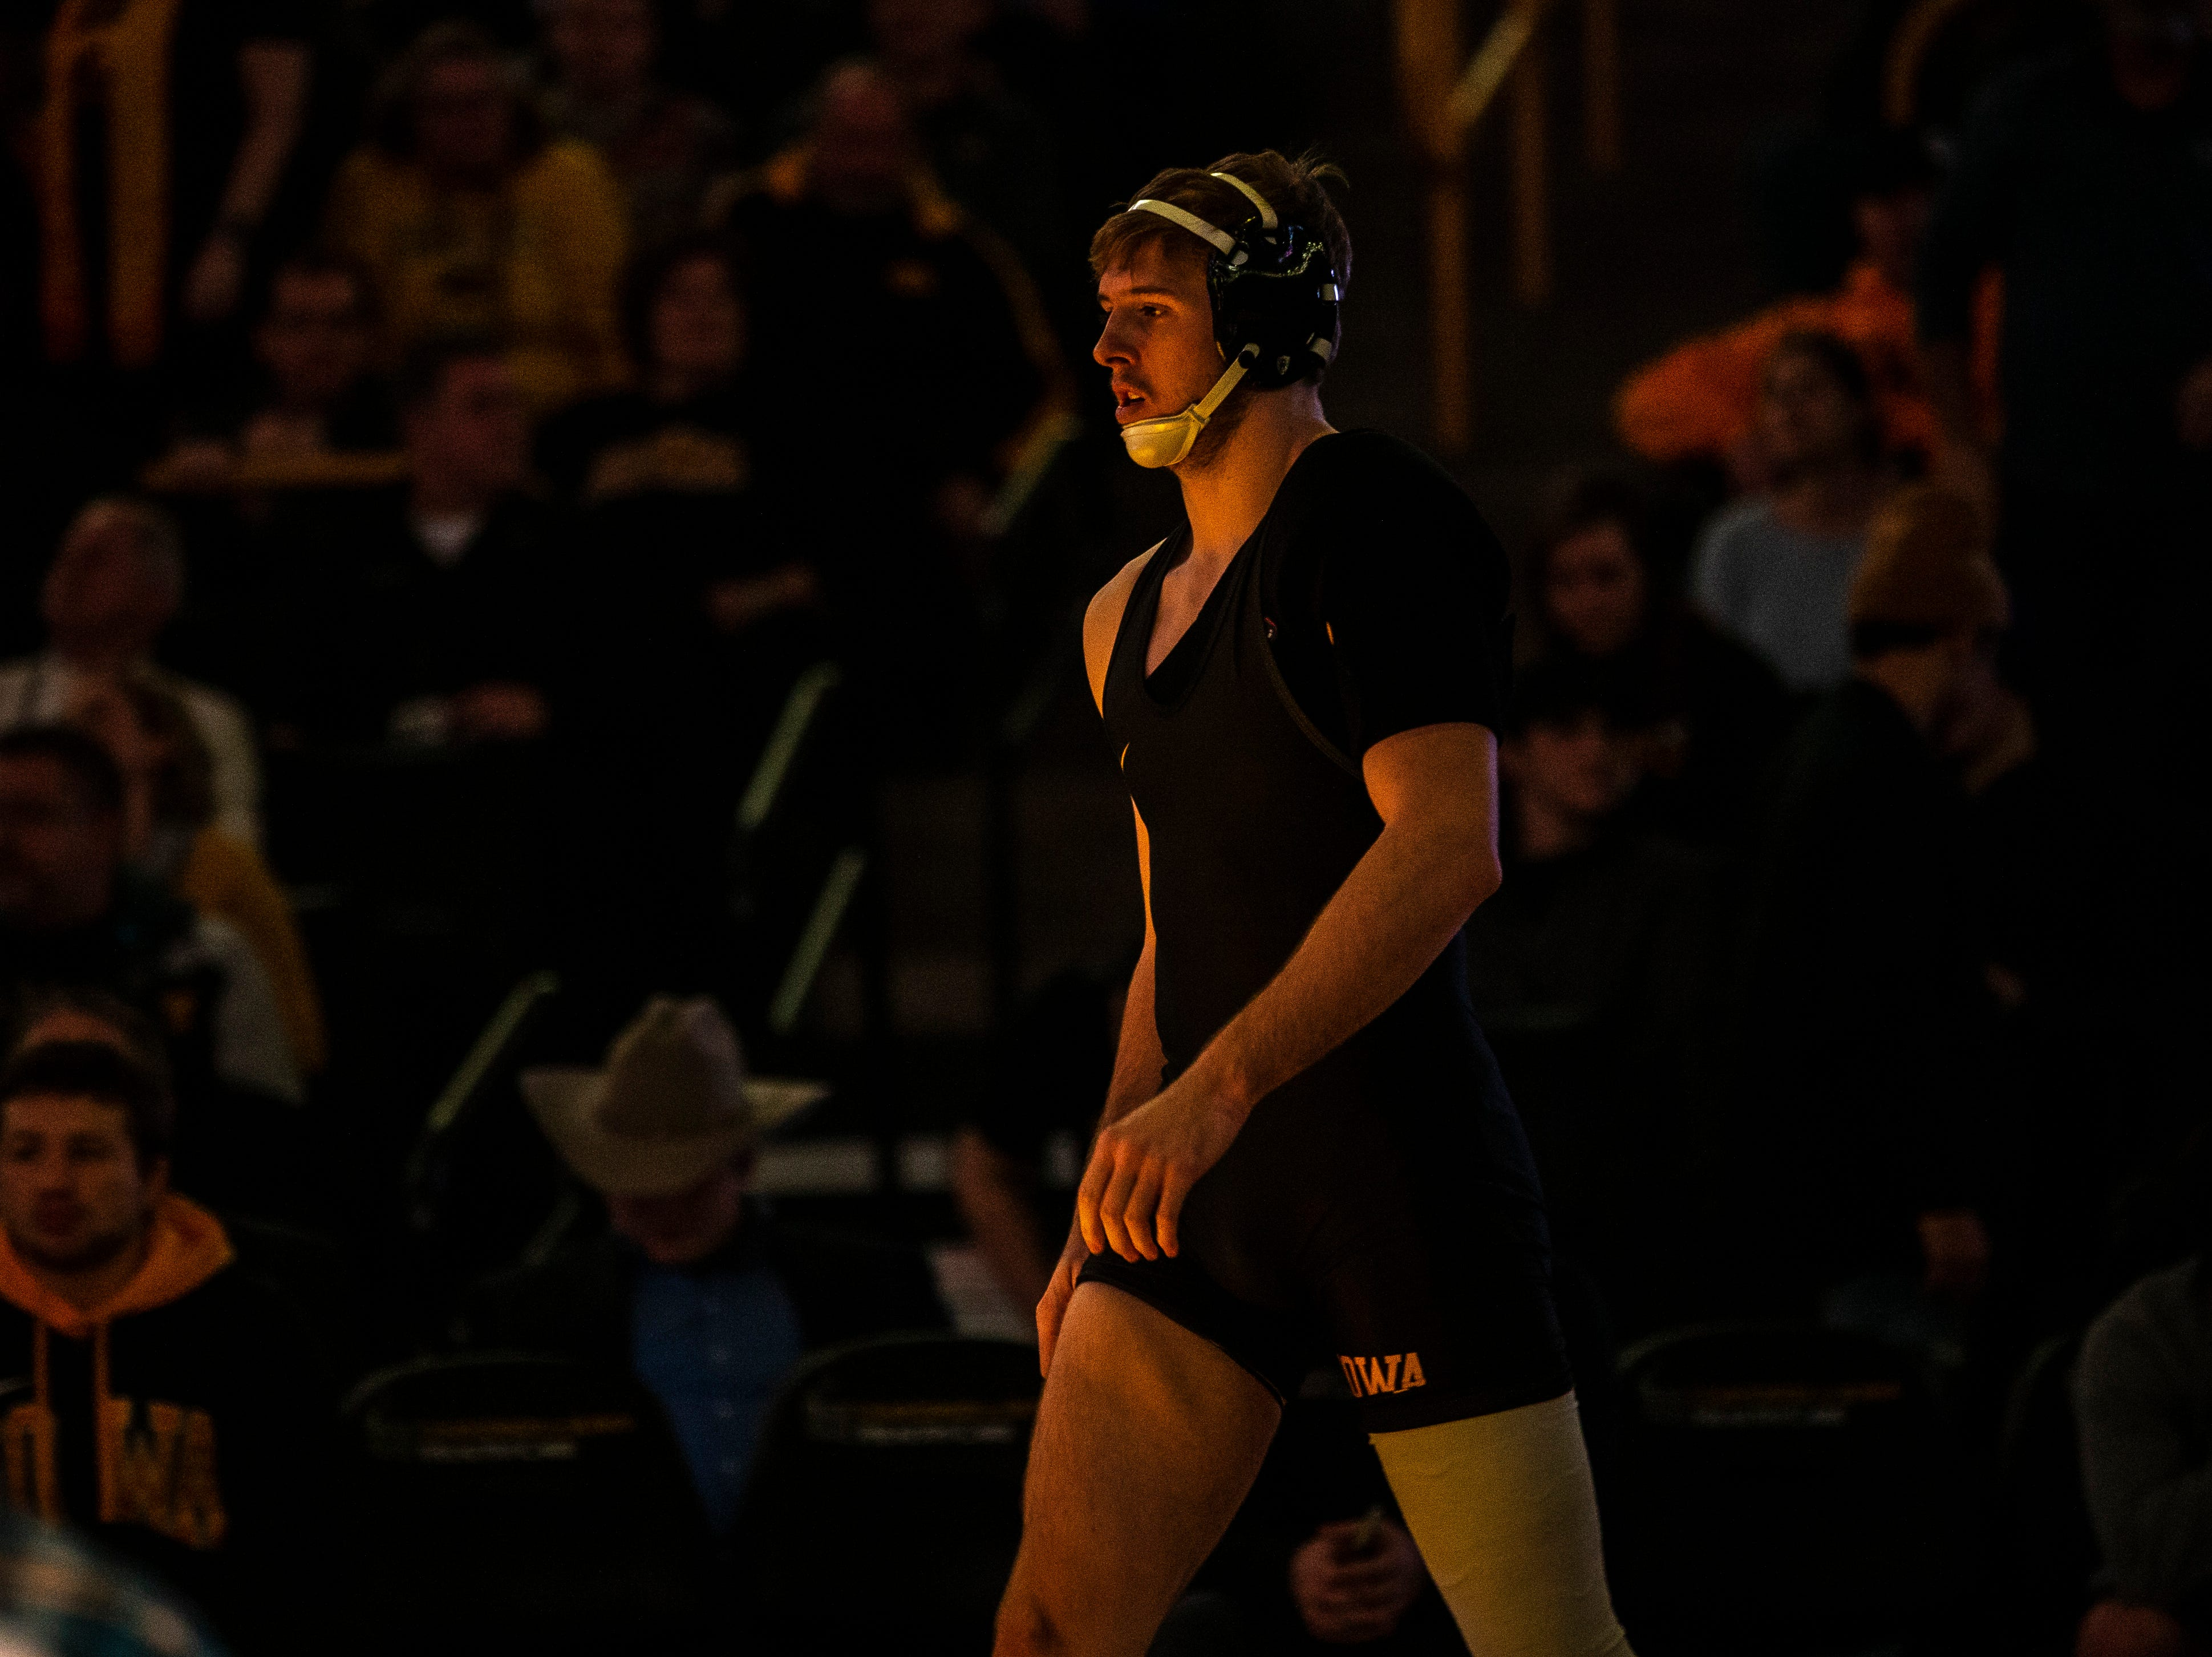 Iowa's Mitch Bowman is introduced before a match at 174 during a NCAA Big Ten Conference wrestling dual on Friday, Feb. 8, 2019 at Carver-Hawkeye Arena in Iowa City, Iowa.